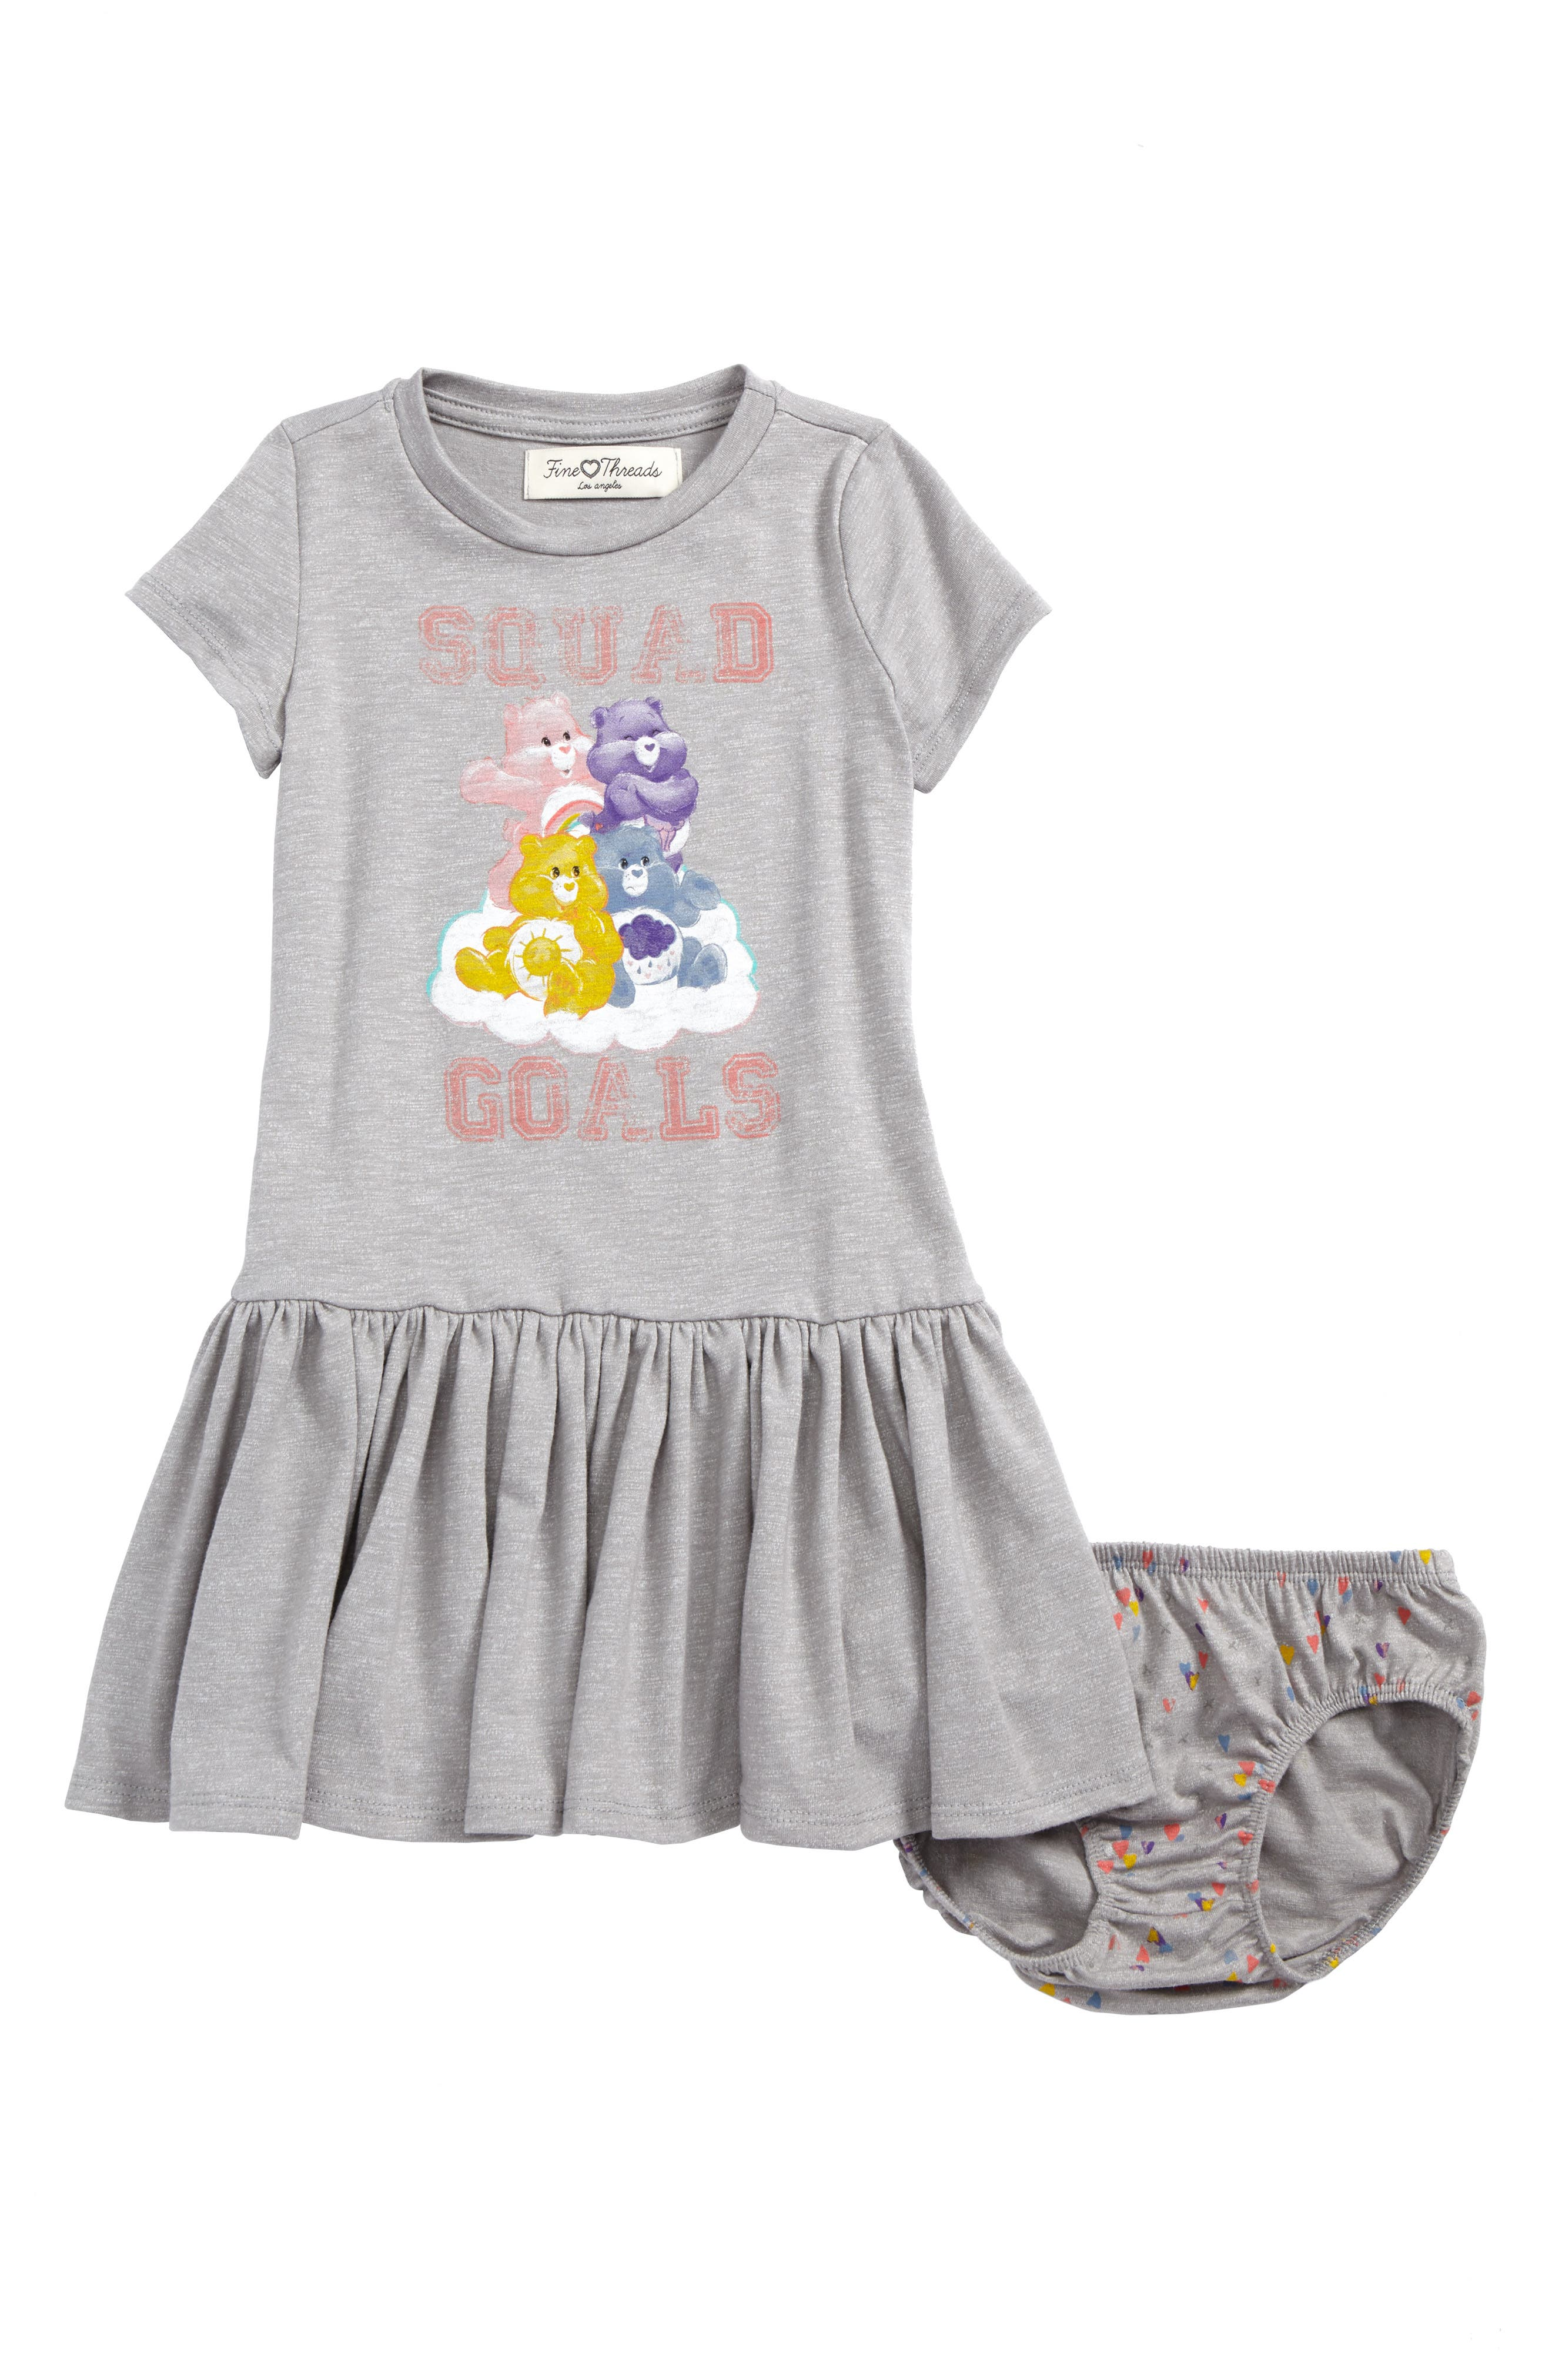 Care Bears™ by Fine Threads Squad Goals Dress (Toddler Girls & Little Girls)